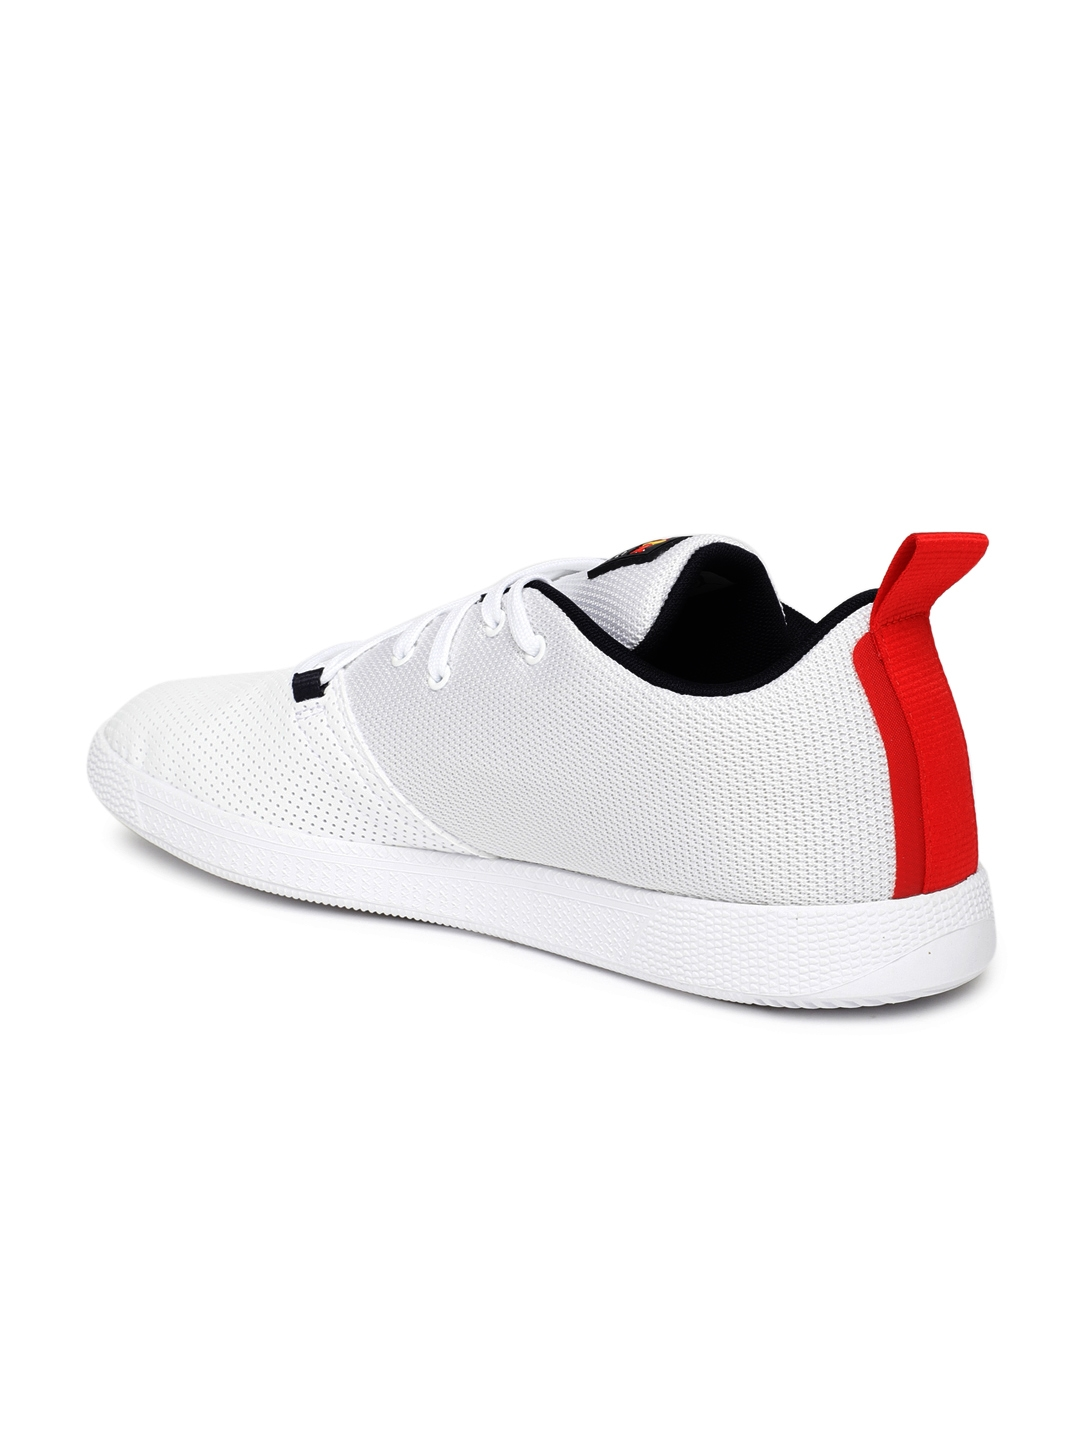 07e62e48292 Buy Puma Men White Red Bull Racing Cups Lo Bulls Casual Shoes ...